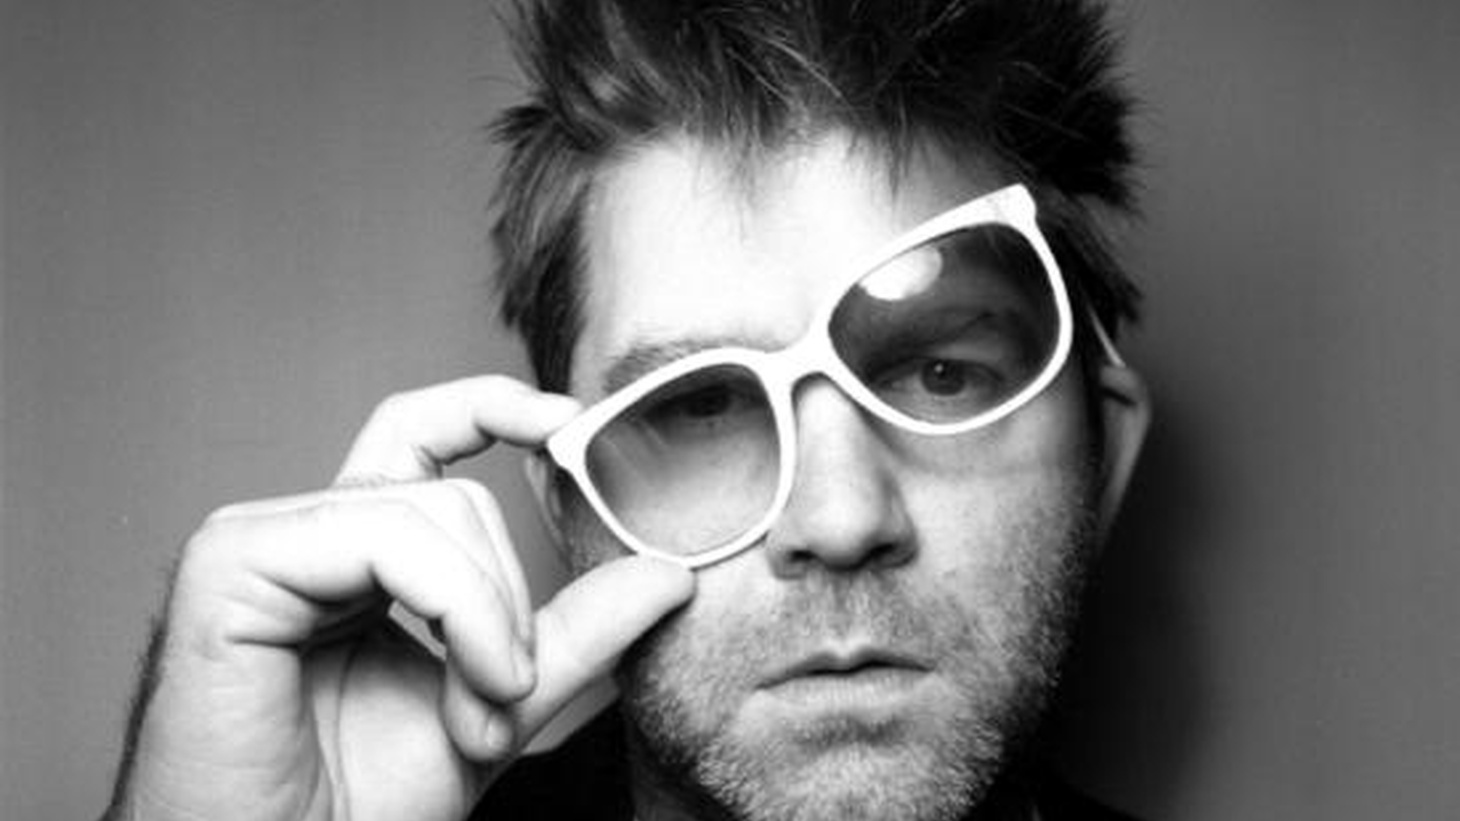 James Murphy, best known as LCD Soundsystem, says his new release will be his last under that moniker. All the more reason to enjoy this set of songs with James and his fantastic band on Morning Becomes Eclectic at 11:15am.